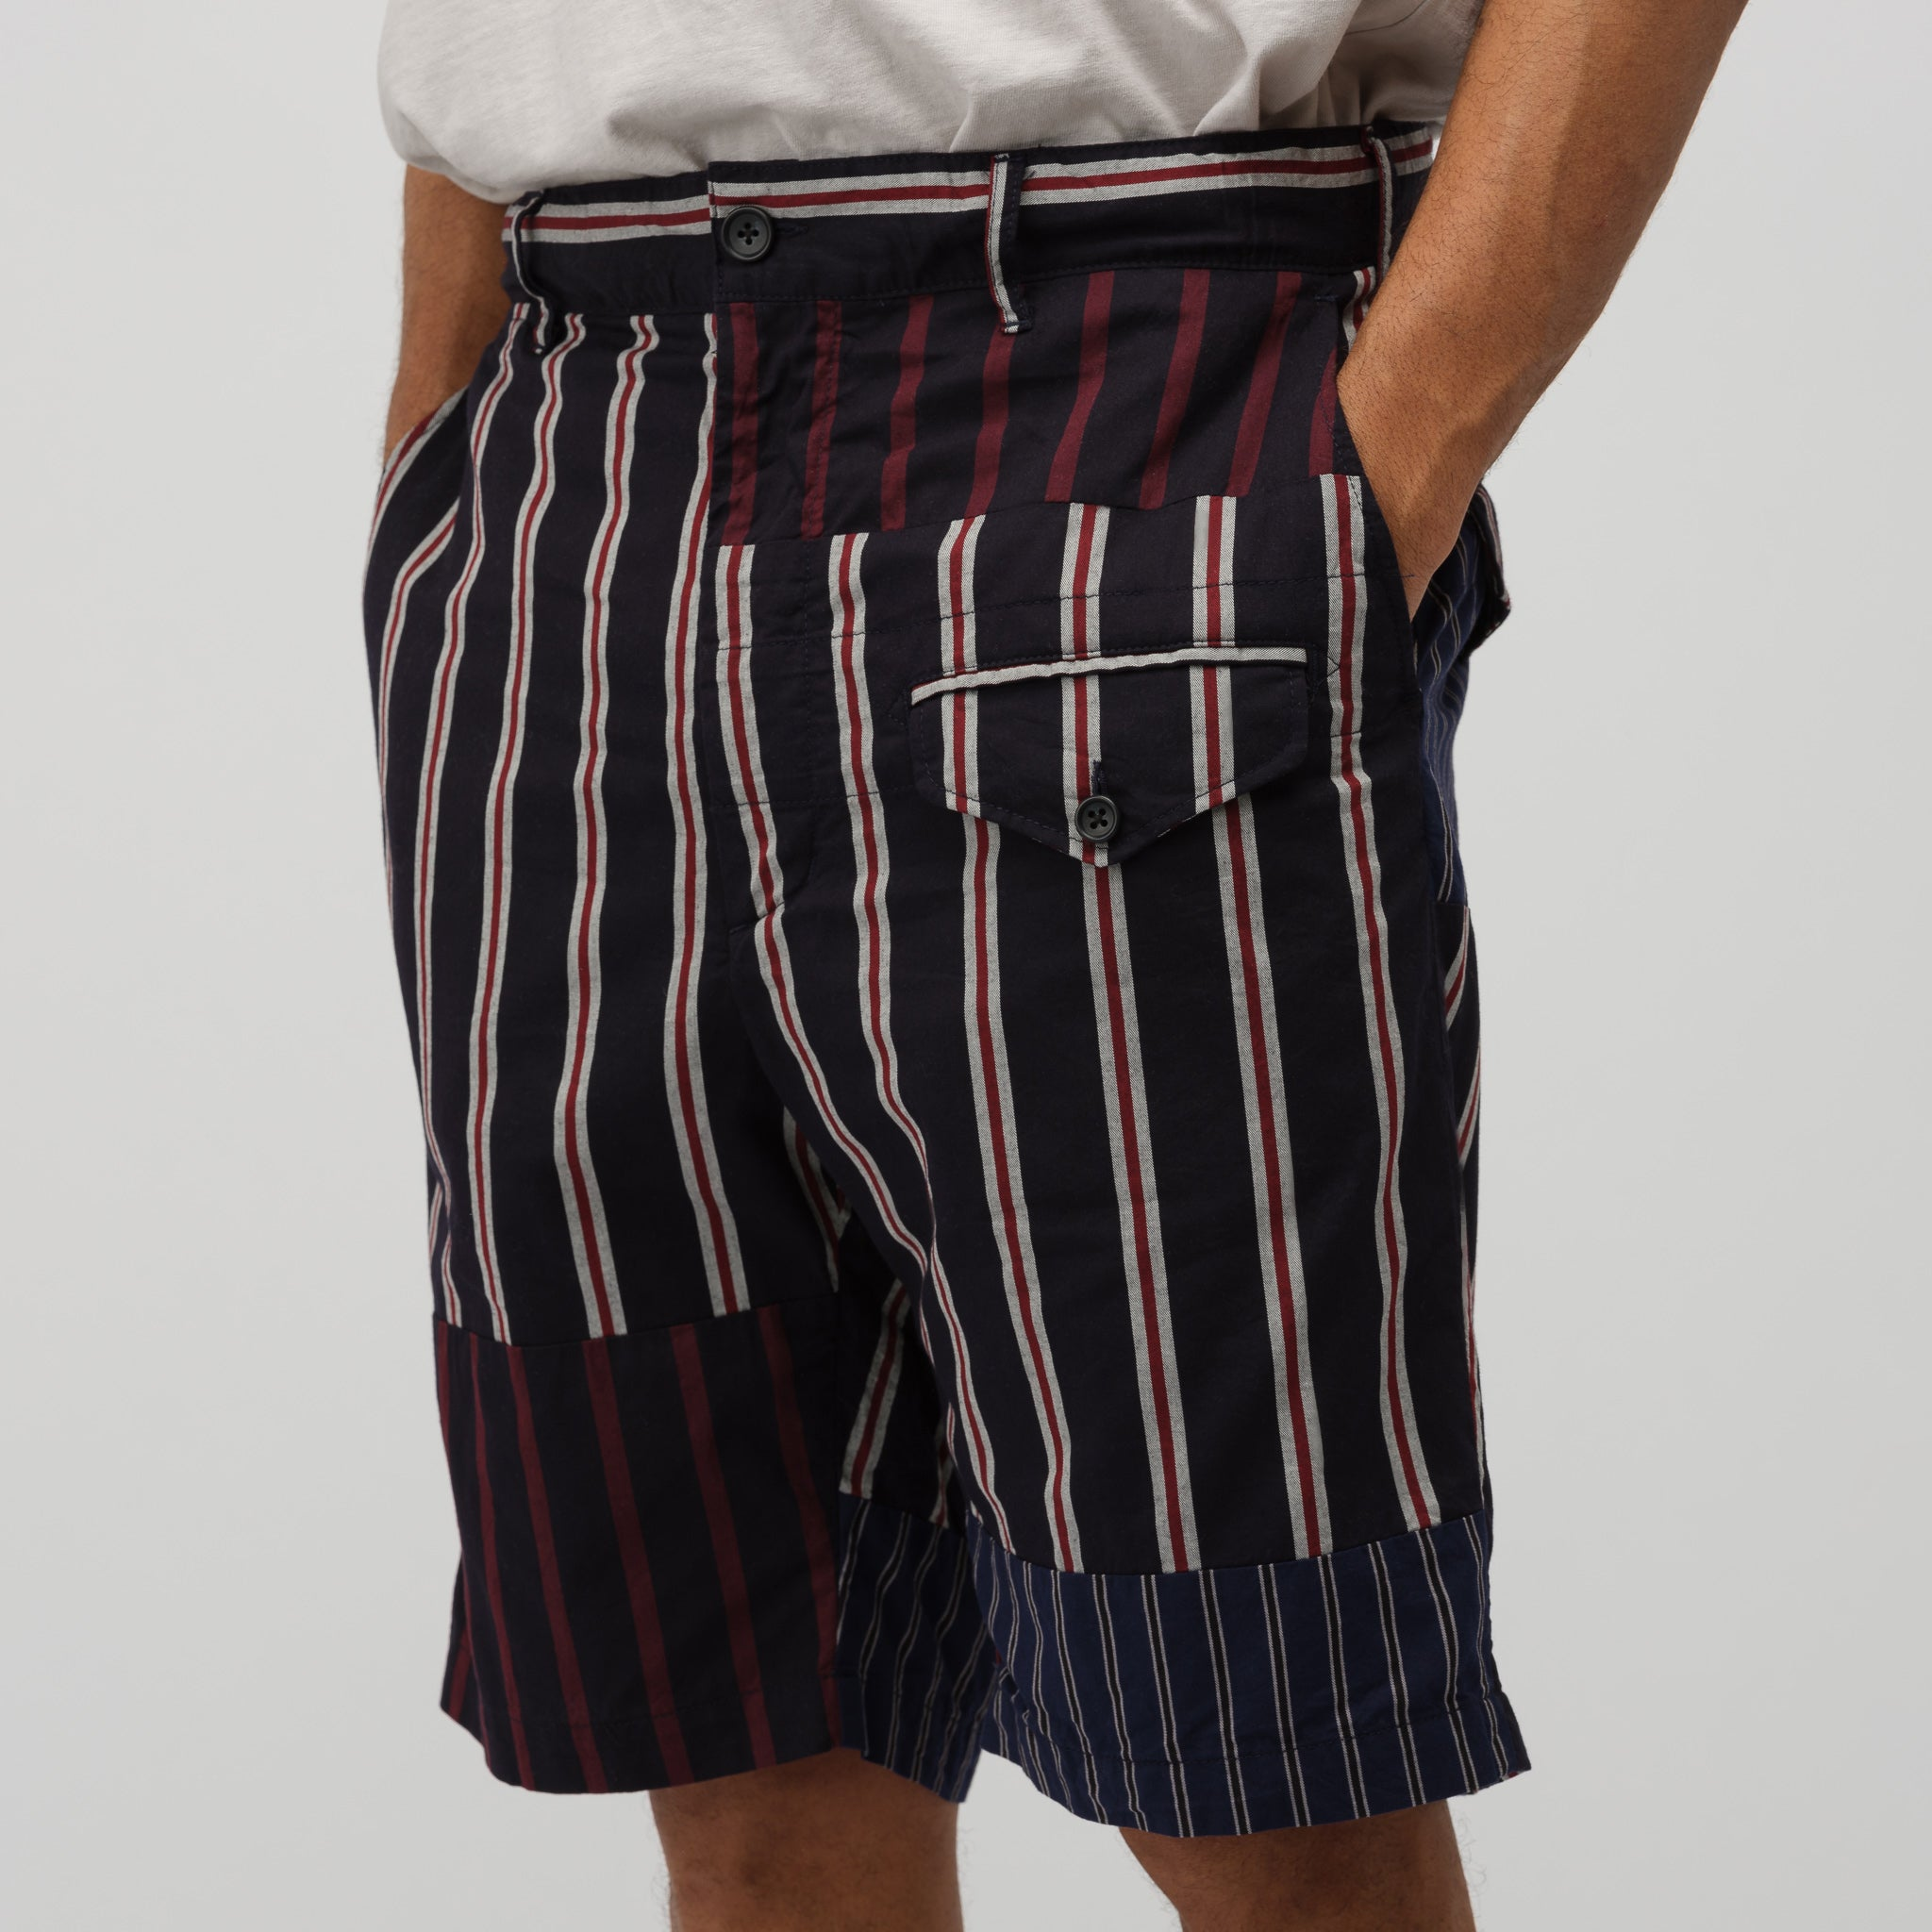 Ghurka Short in Navy/Red/White